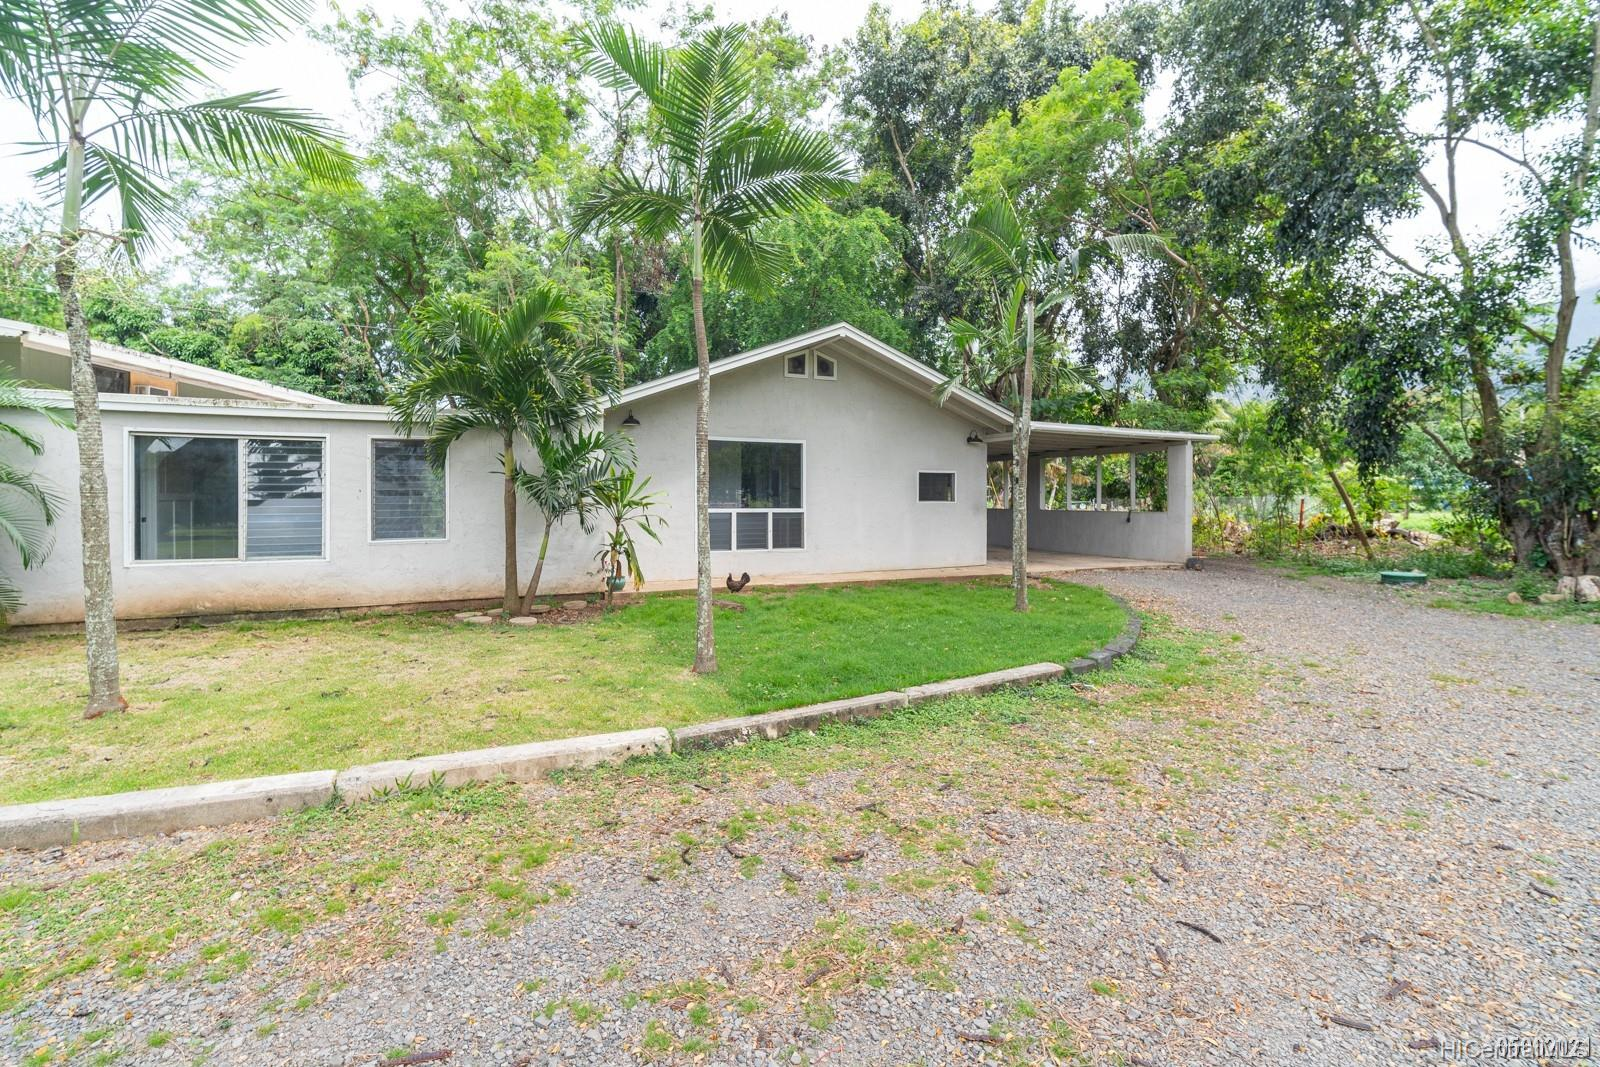 41-363 Saddle City Road Waimanalo - Rental - photo 1 of 20